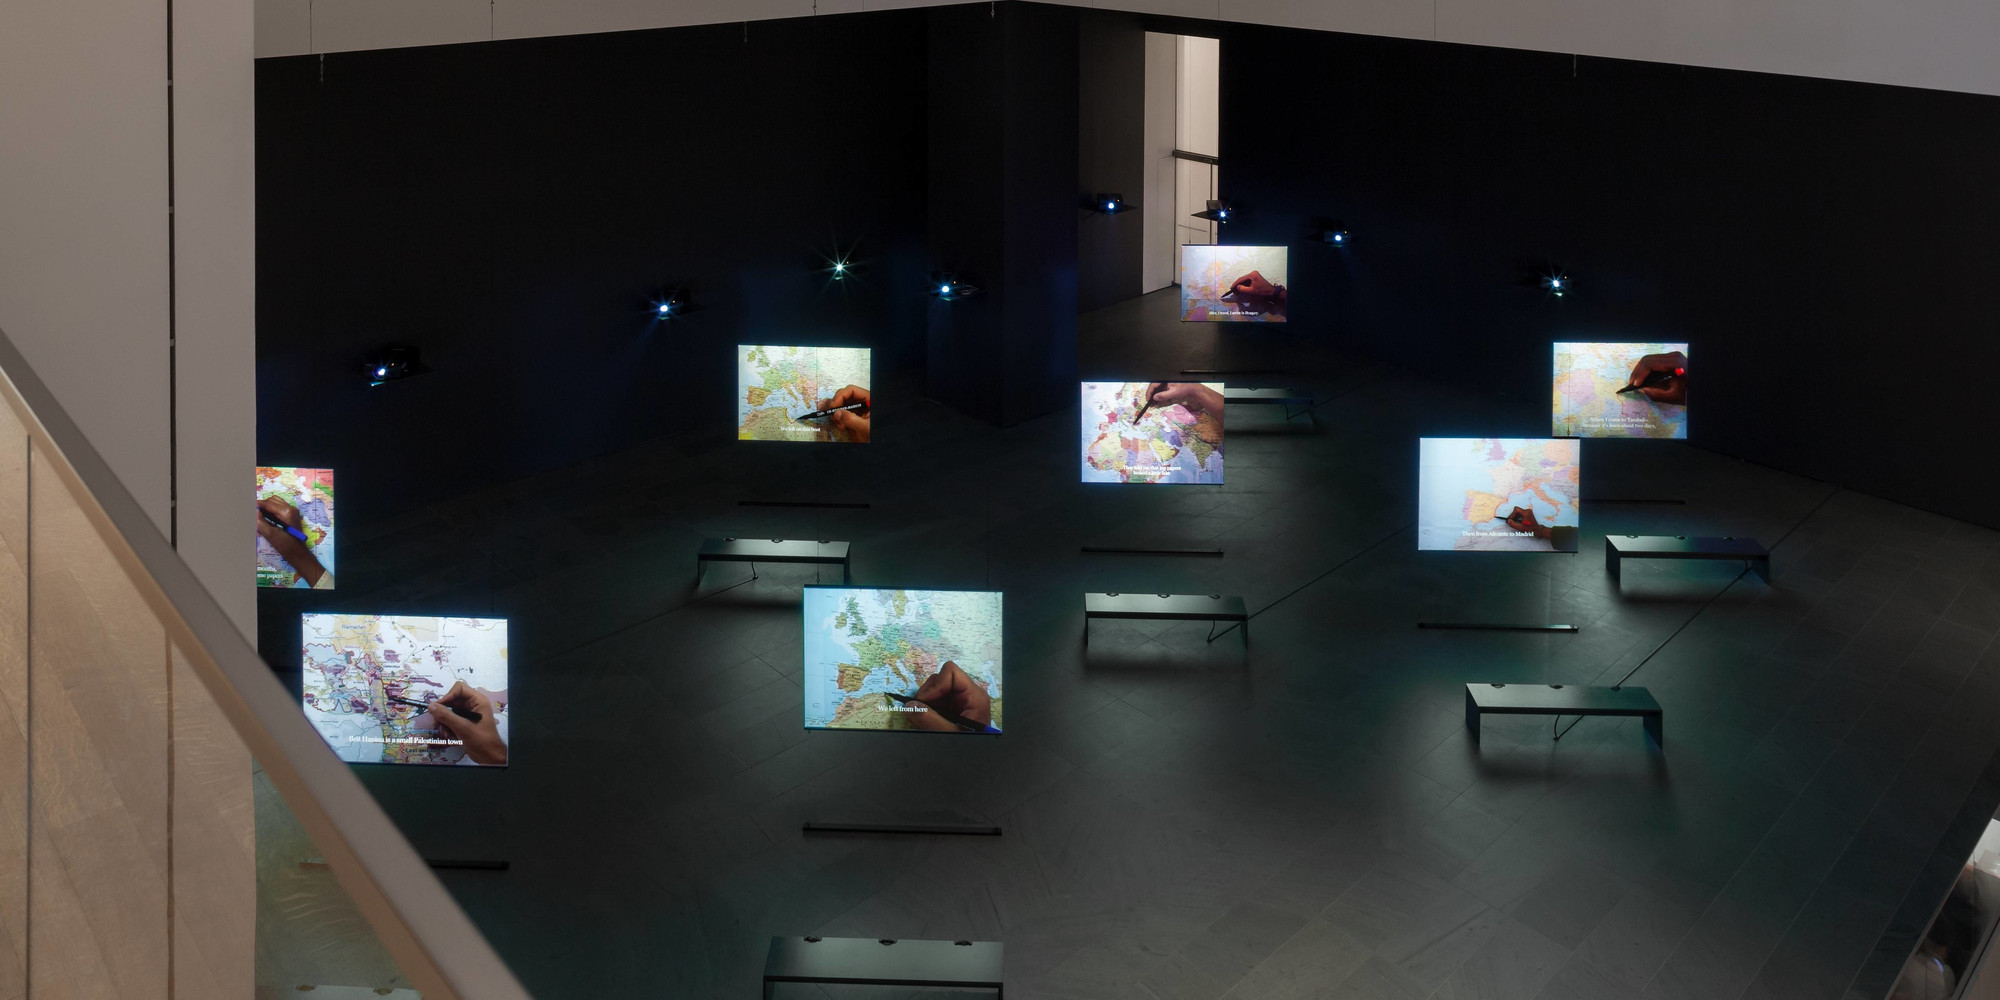 Bouchra Khalili. The Mapping Journey Project. 2008–11. Eight-channel video (color, sound), duration variable. Fund for the Twenty-First Century. © Bouchra Khalili. Courtesy of the artist